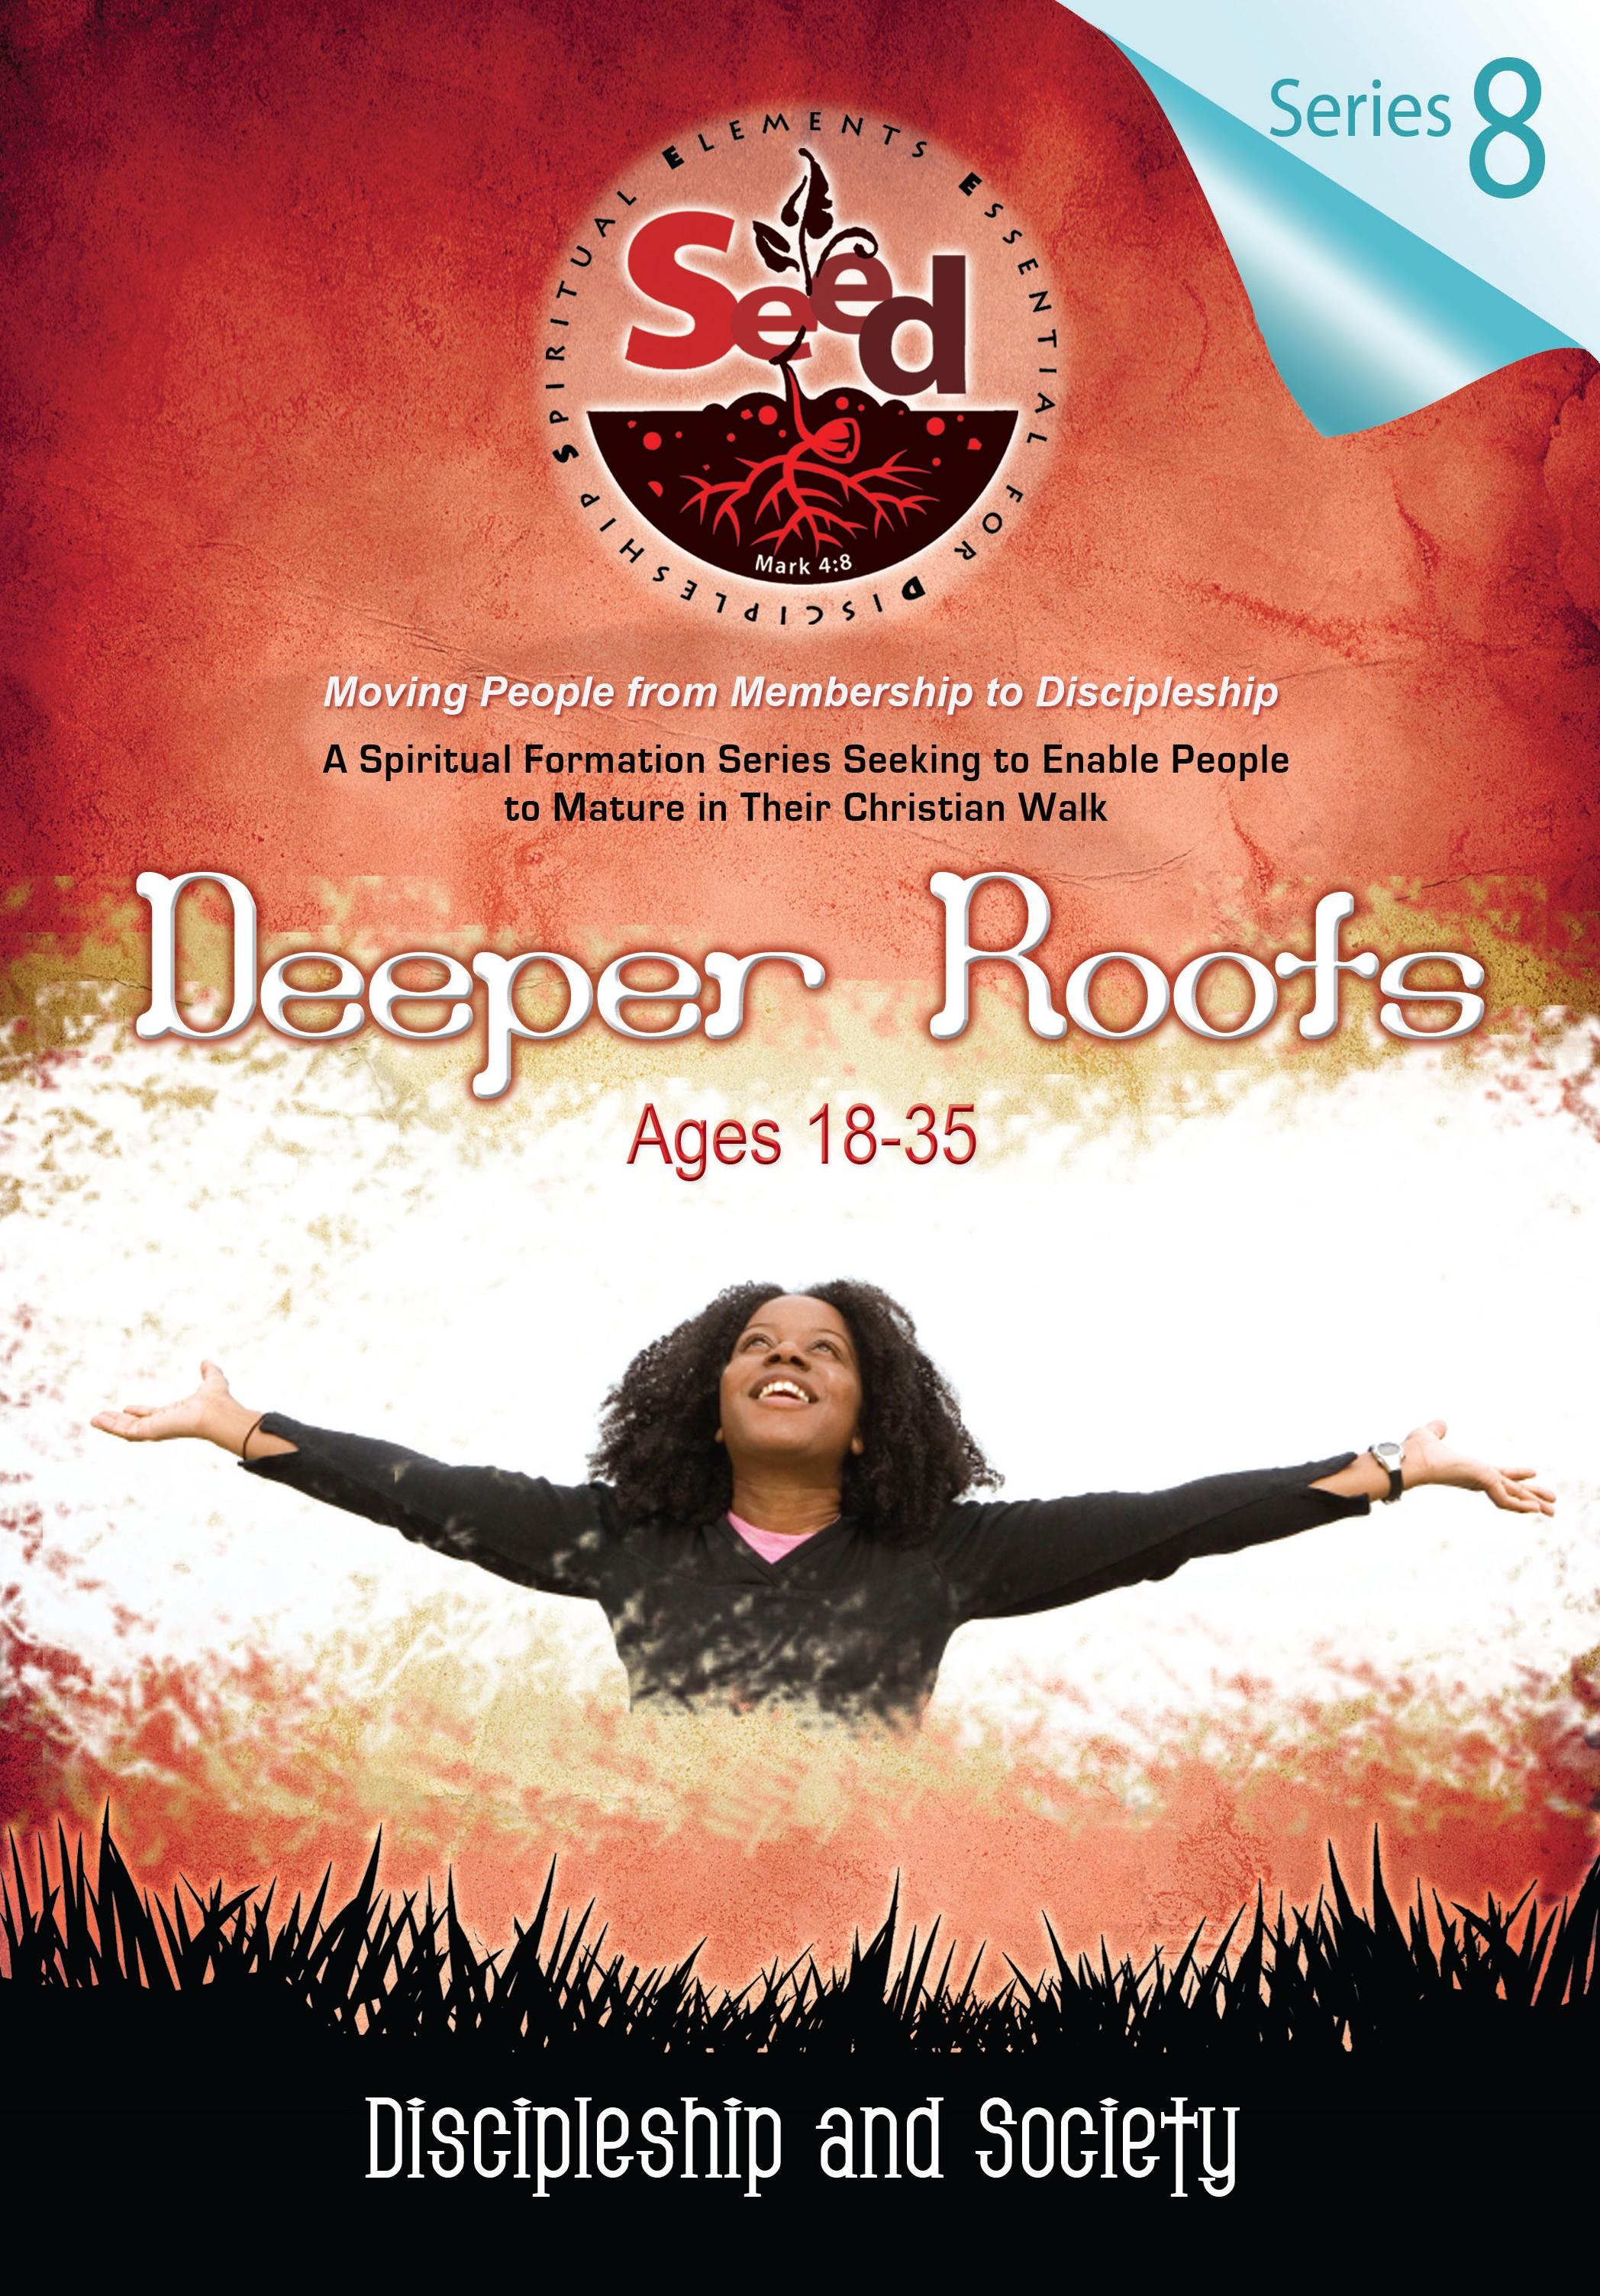 SEED Deeper Roots (Ages18-35): Series 8: Discipleship and Society